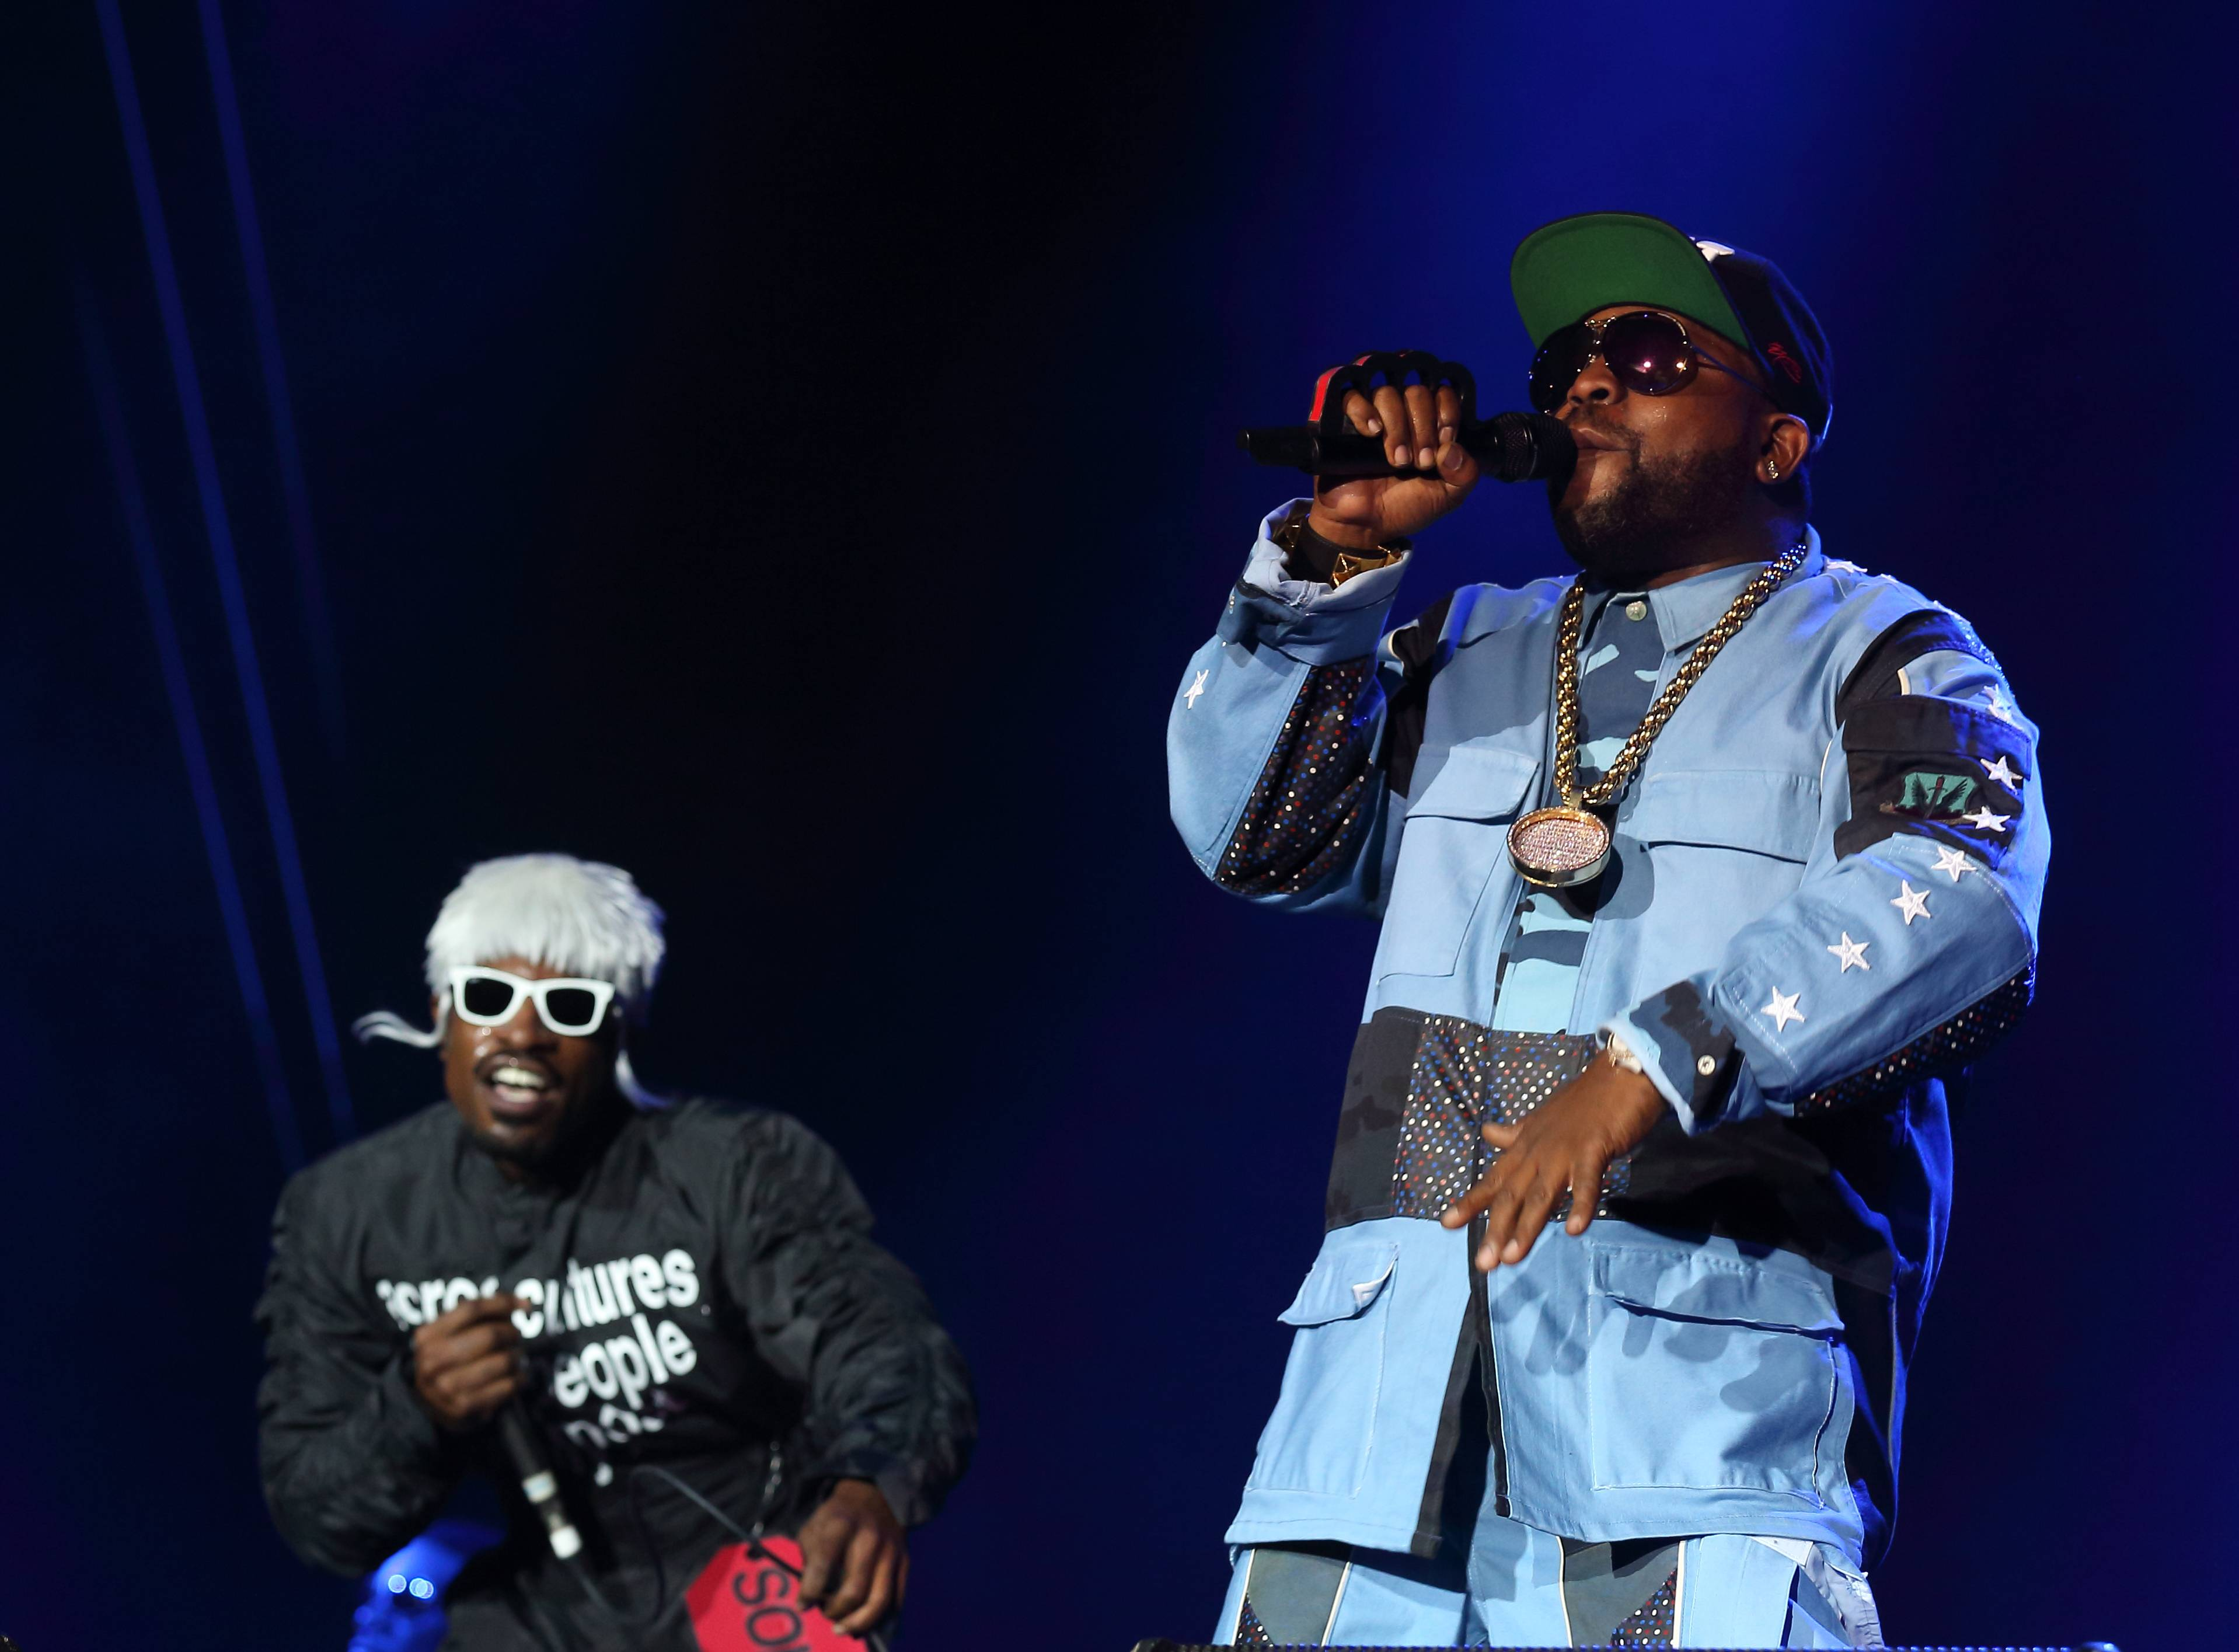 Andre 3000, left, and Big Boi, right, of Outkast close out the second day of Lollapalooza in Chicago's Grant Park.